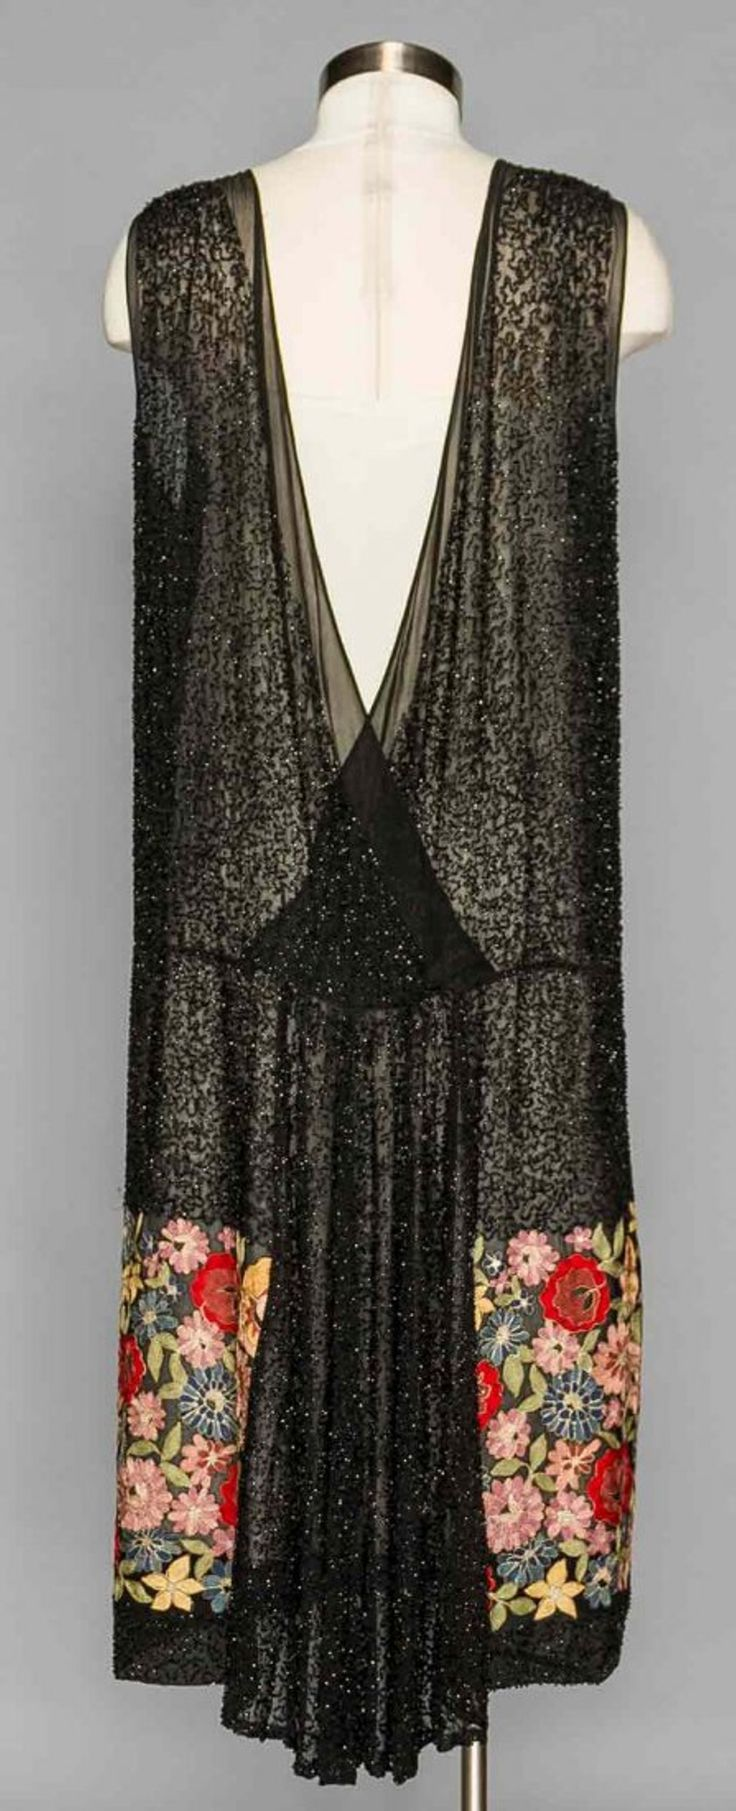 Lot: BEADED & EMBROIDERED PARTY DRESS, 1920s, Lot Number: 0249, Starting Bid: $200, Auctioneer: Augusta Auctions, Auction: SPECTACULAR MUSEUM SALE - COUTURE & VINTAGE, Date: April 20th, 2016 SAST